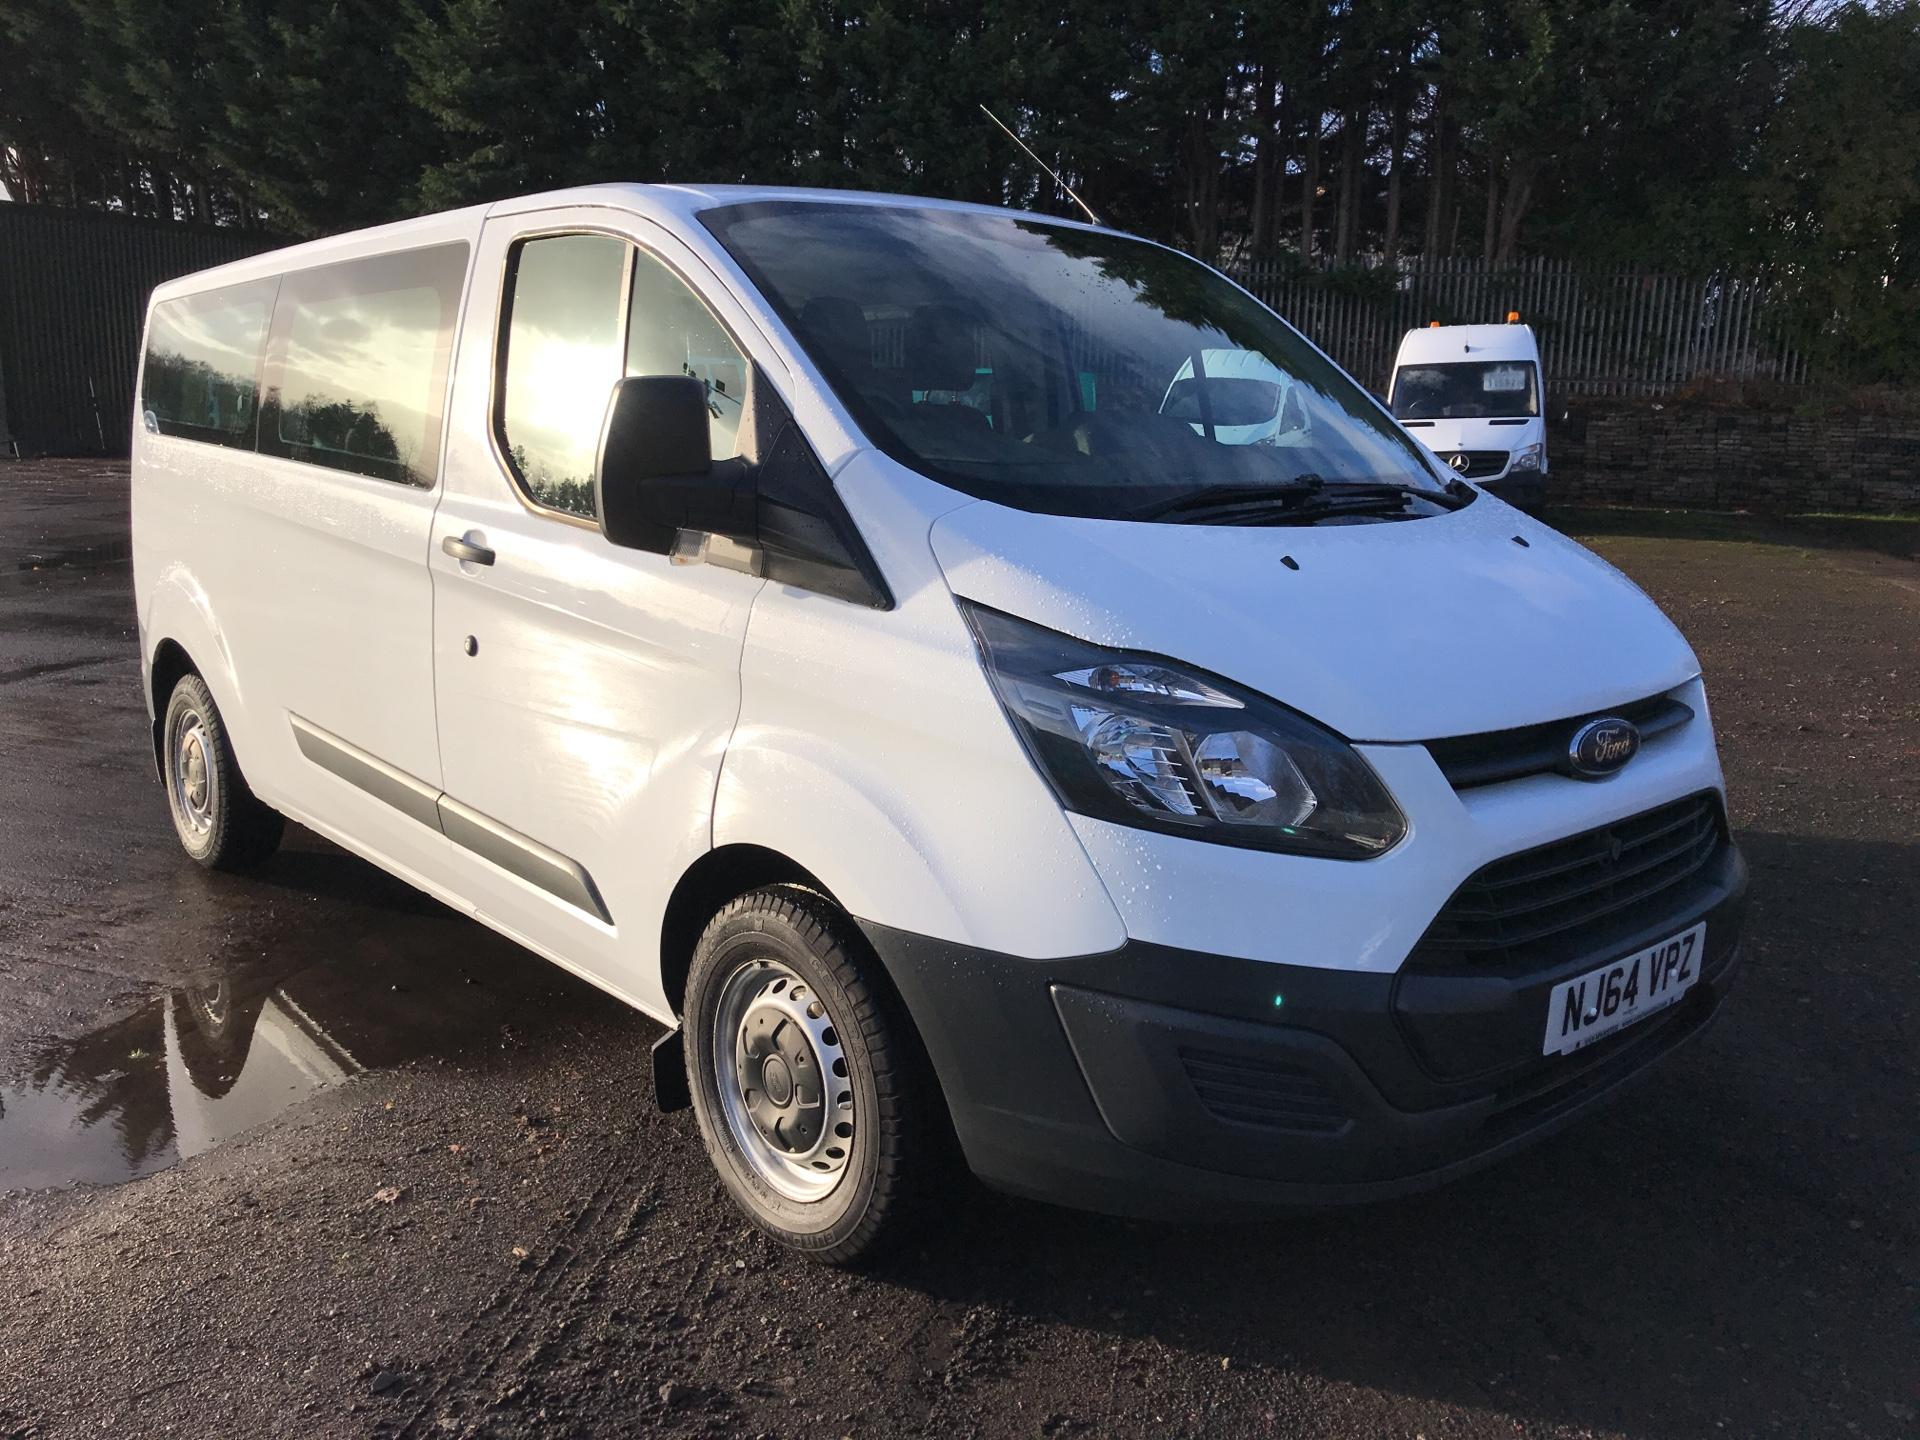 2014 Ford Transit Custom 310 L2 DIESEL FWD 2.2 TDCI 125PS LOW ROOF KOMBI EURO 5 (VALUE RANGE VEHICLE - CONDITION REFLECTED IN PRICE) (NJ64VPZ)